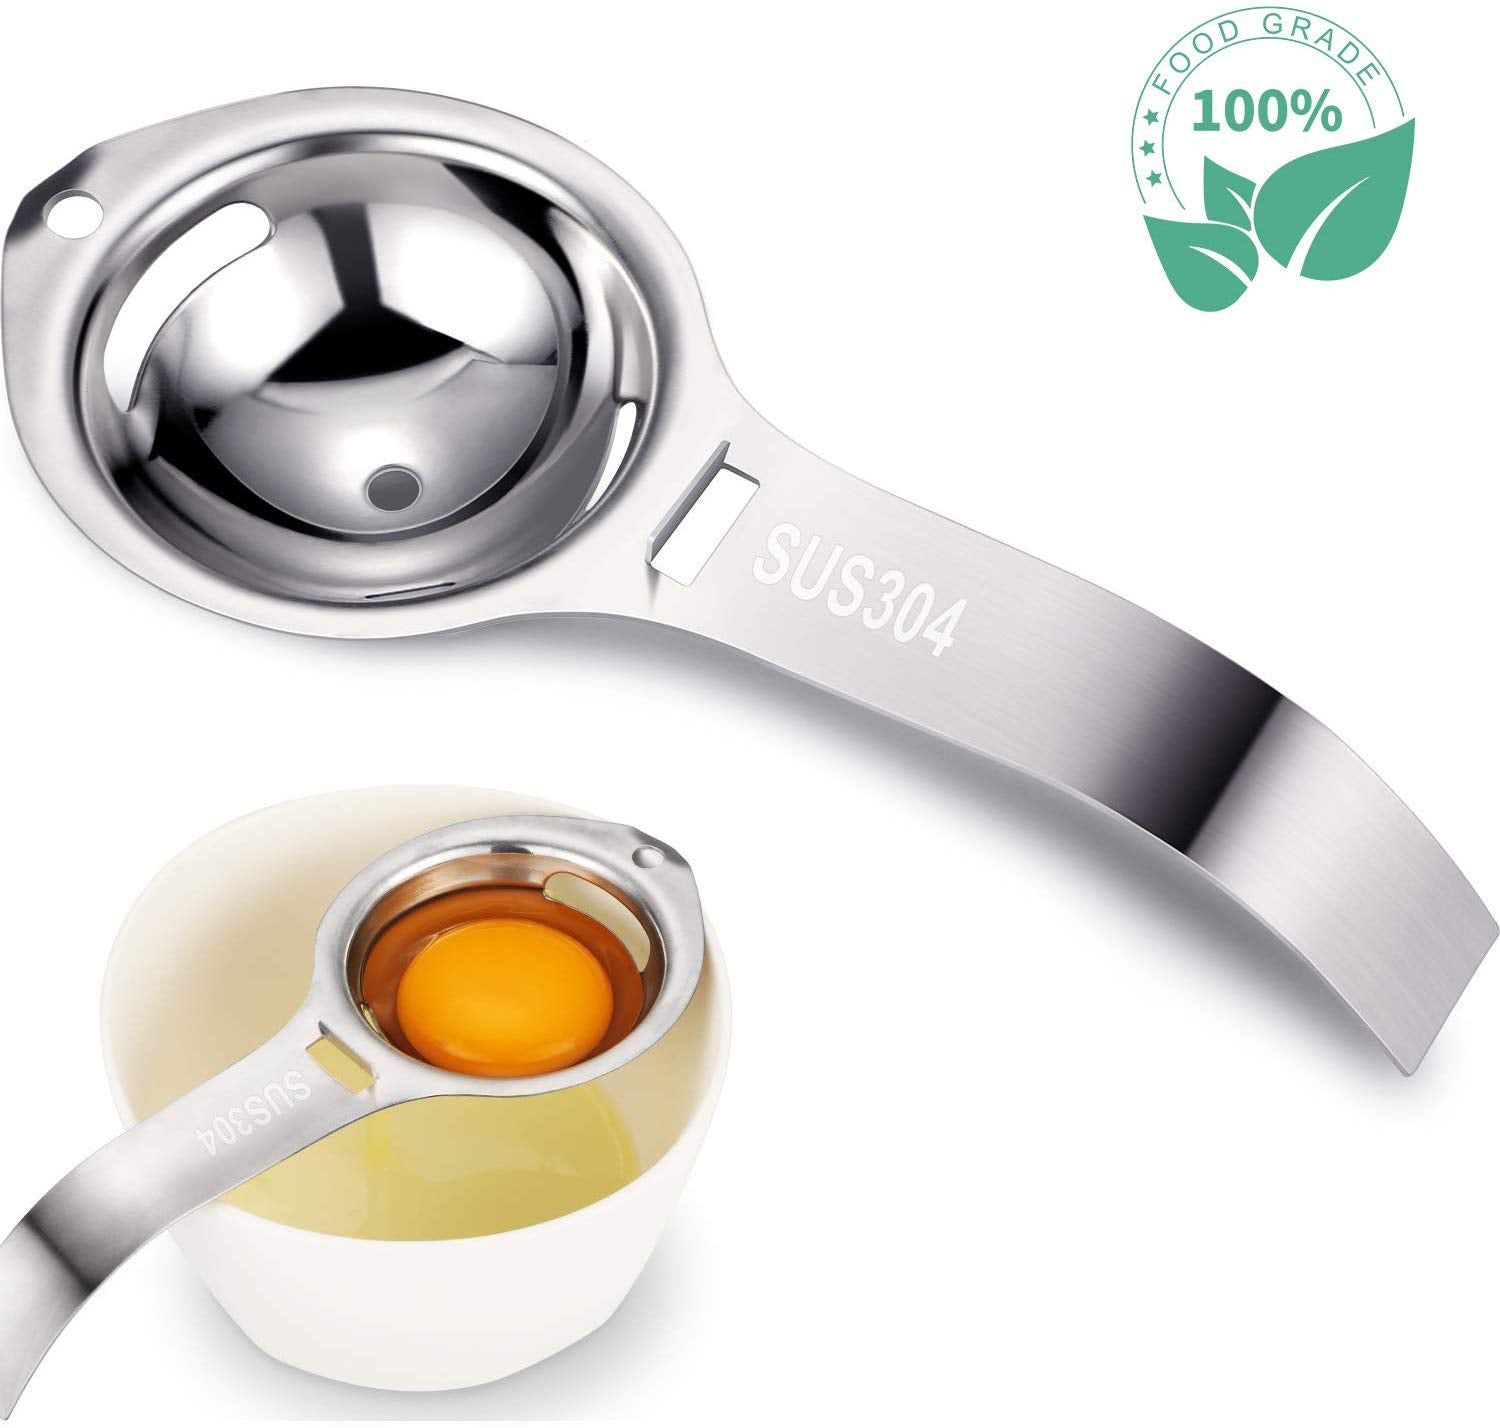 18/8 Stainless Steel Egg Separator, Dishwasher Safe Egg White Separator